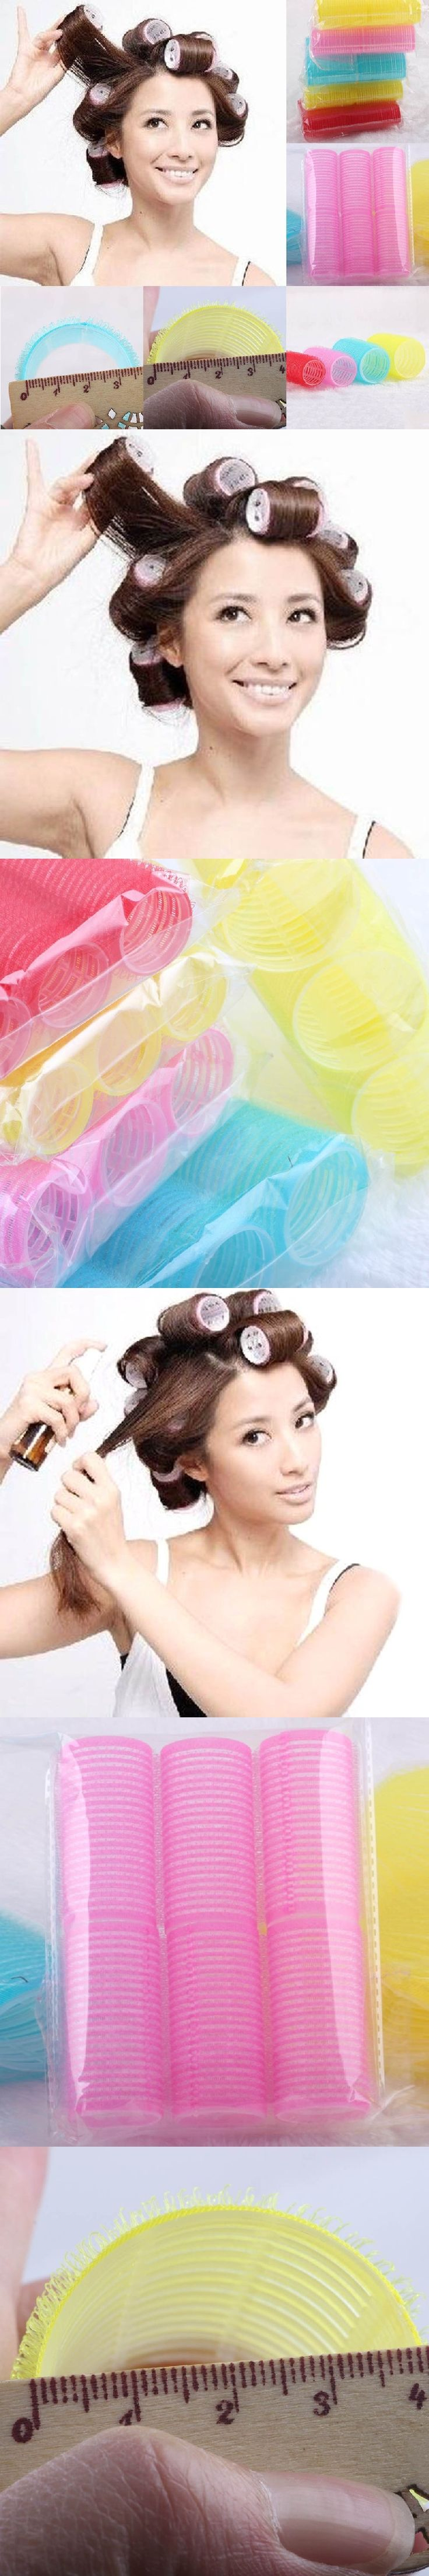 6Pcs/Sets Women Girls Big Self Grip Hair Rollers Cling Any Size DIY Hair Curlers Beauty Tools